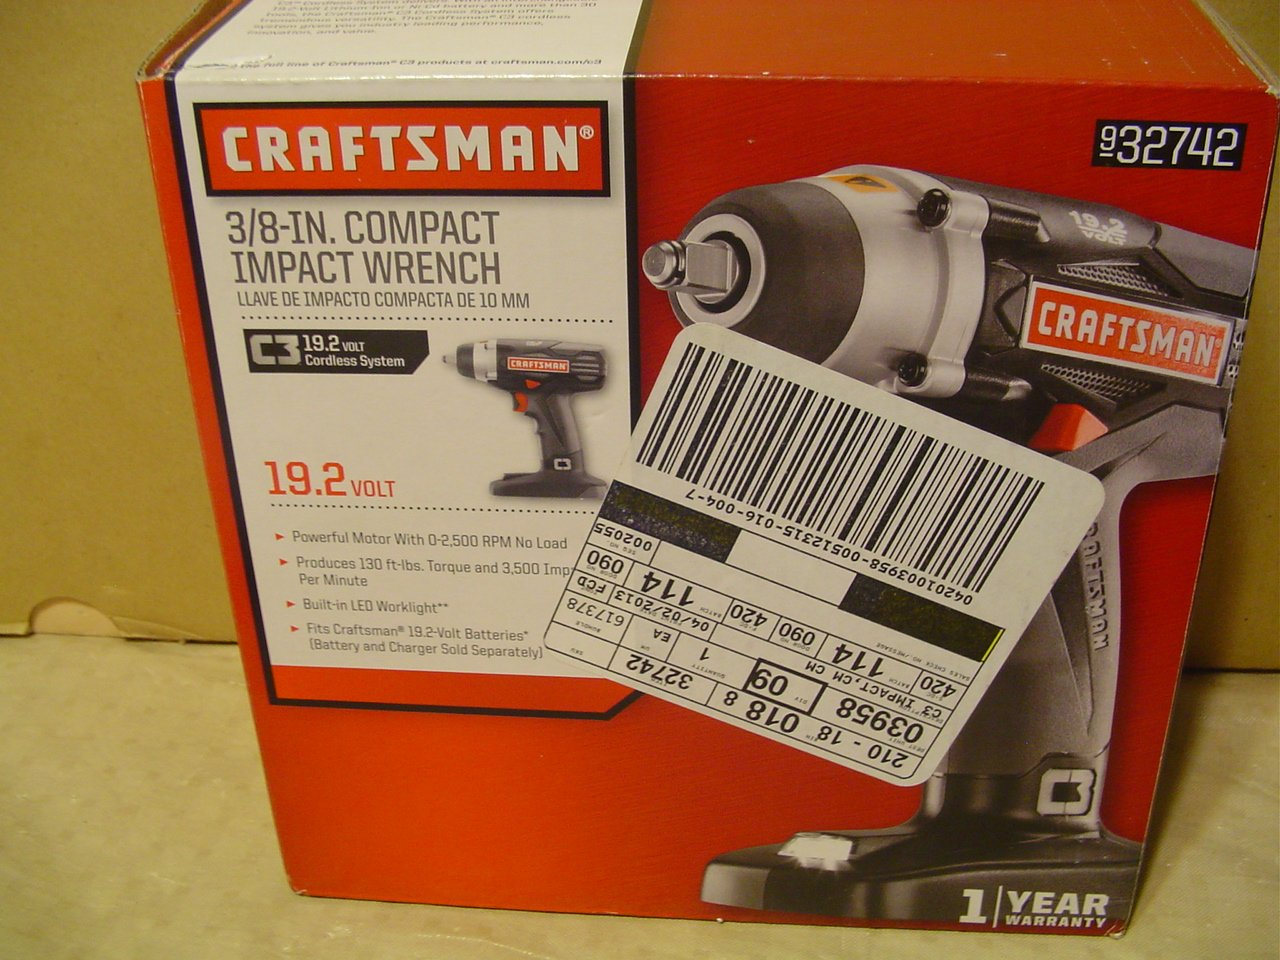 Bare Tool Only - No Battery - No Charger - Bulk Pack Craftsman 19.2v C3 3//8 Impact Wrench